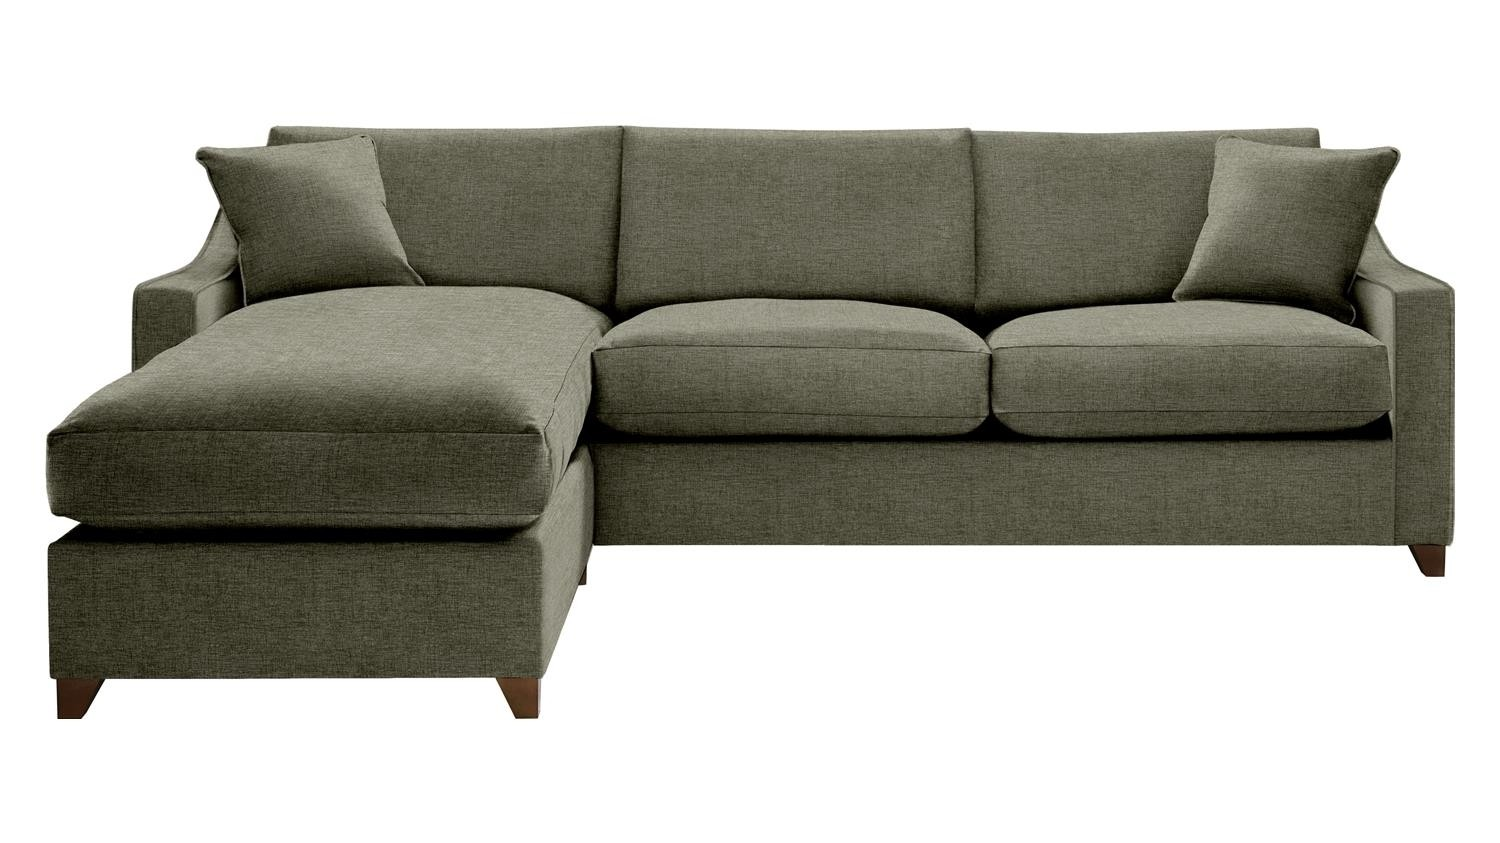 The Bermerton 5 Seater Left Chaise Storage Sofa Bed